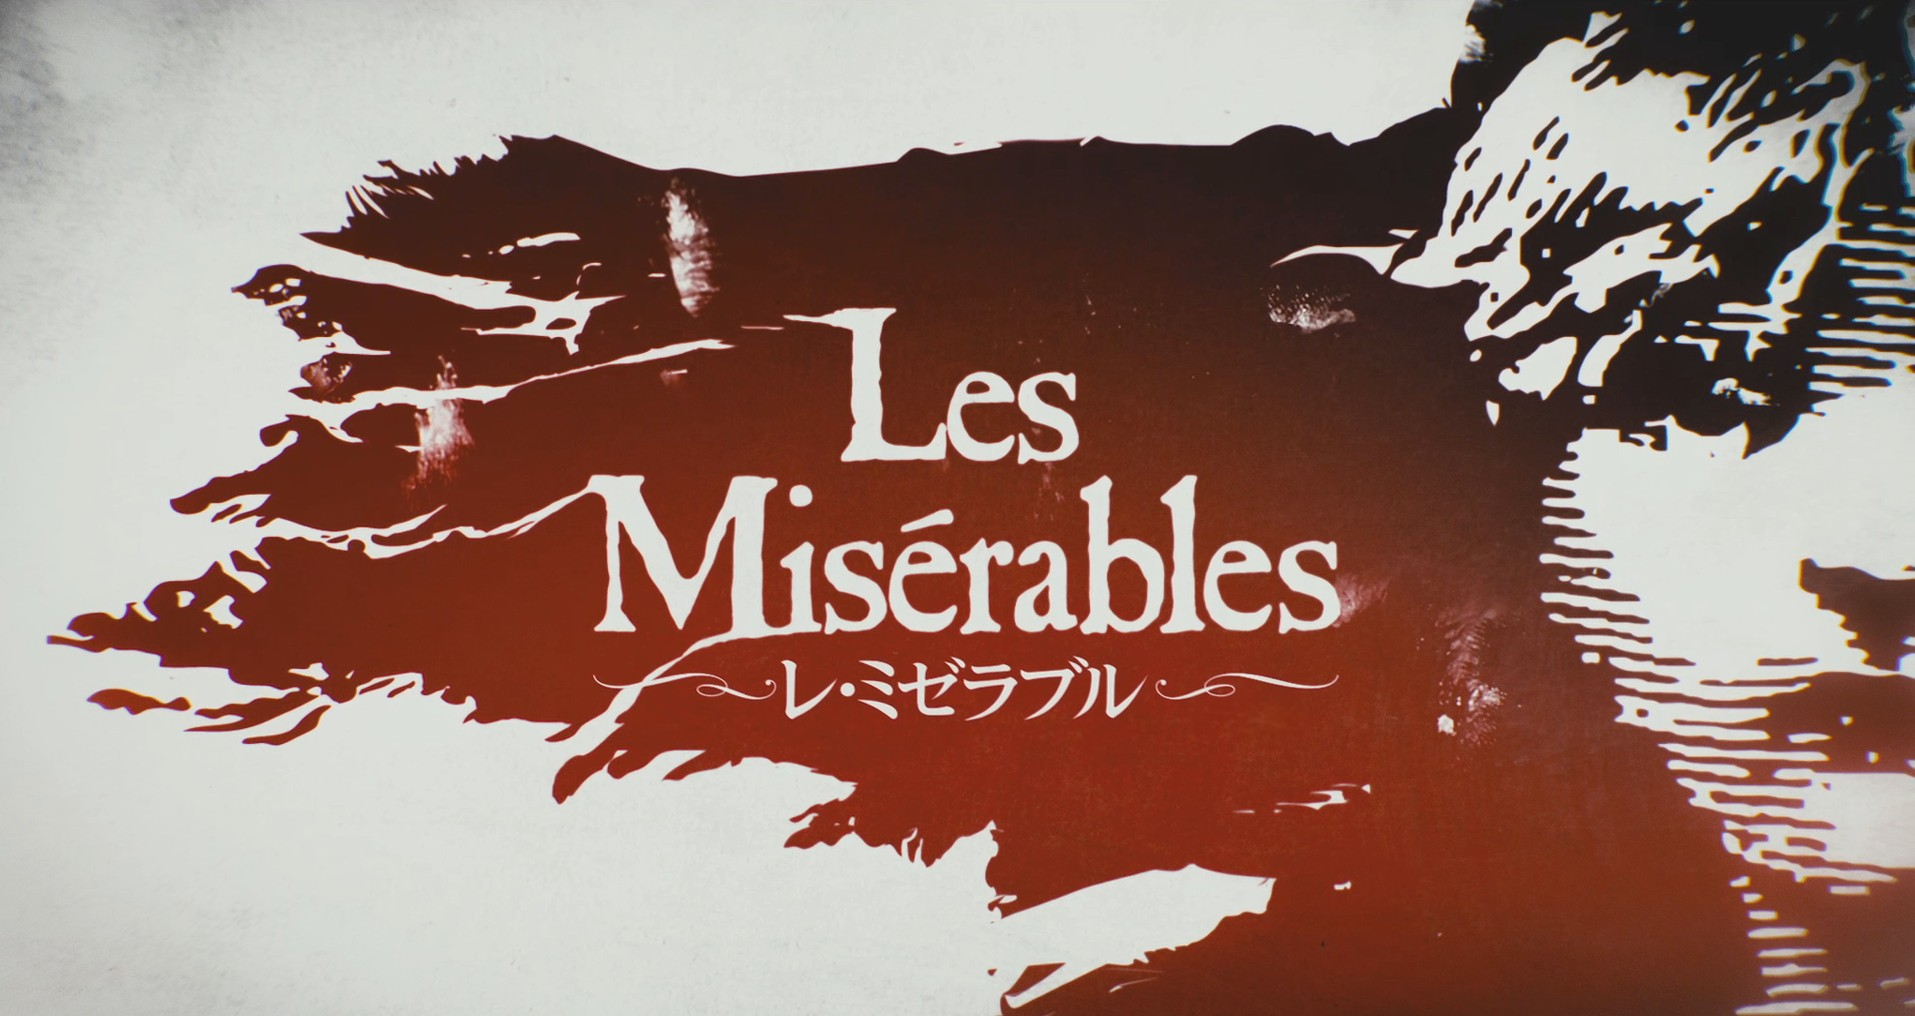 LES-MISERABLES_logo.jpg